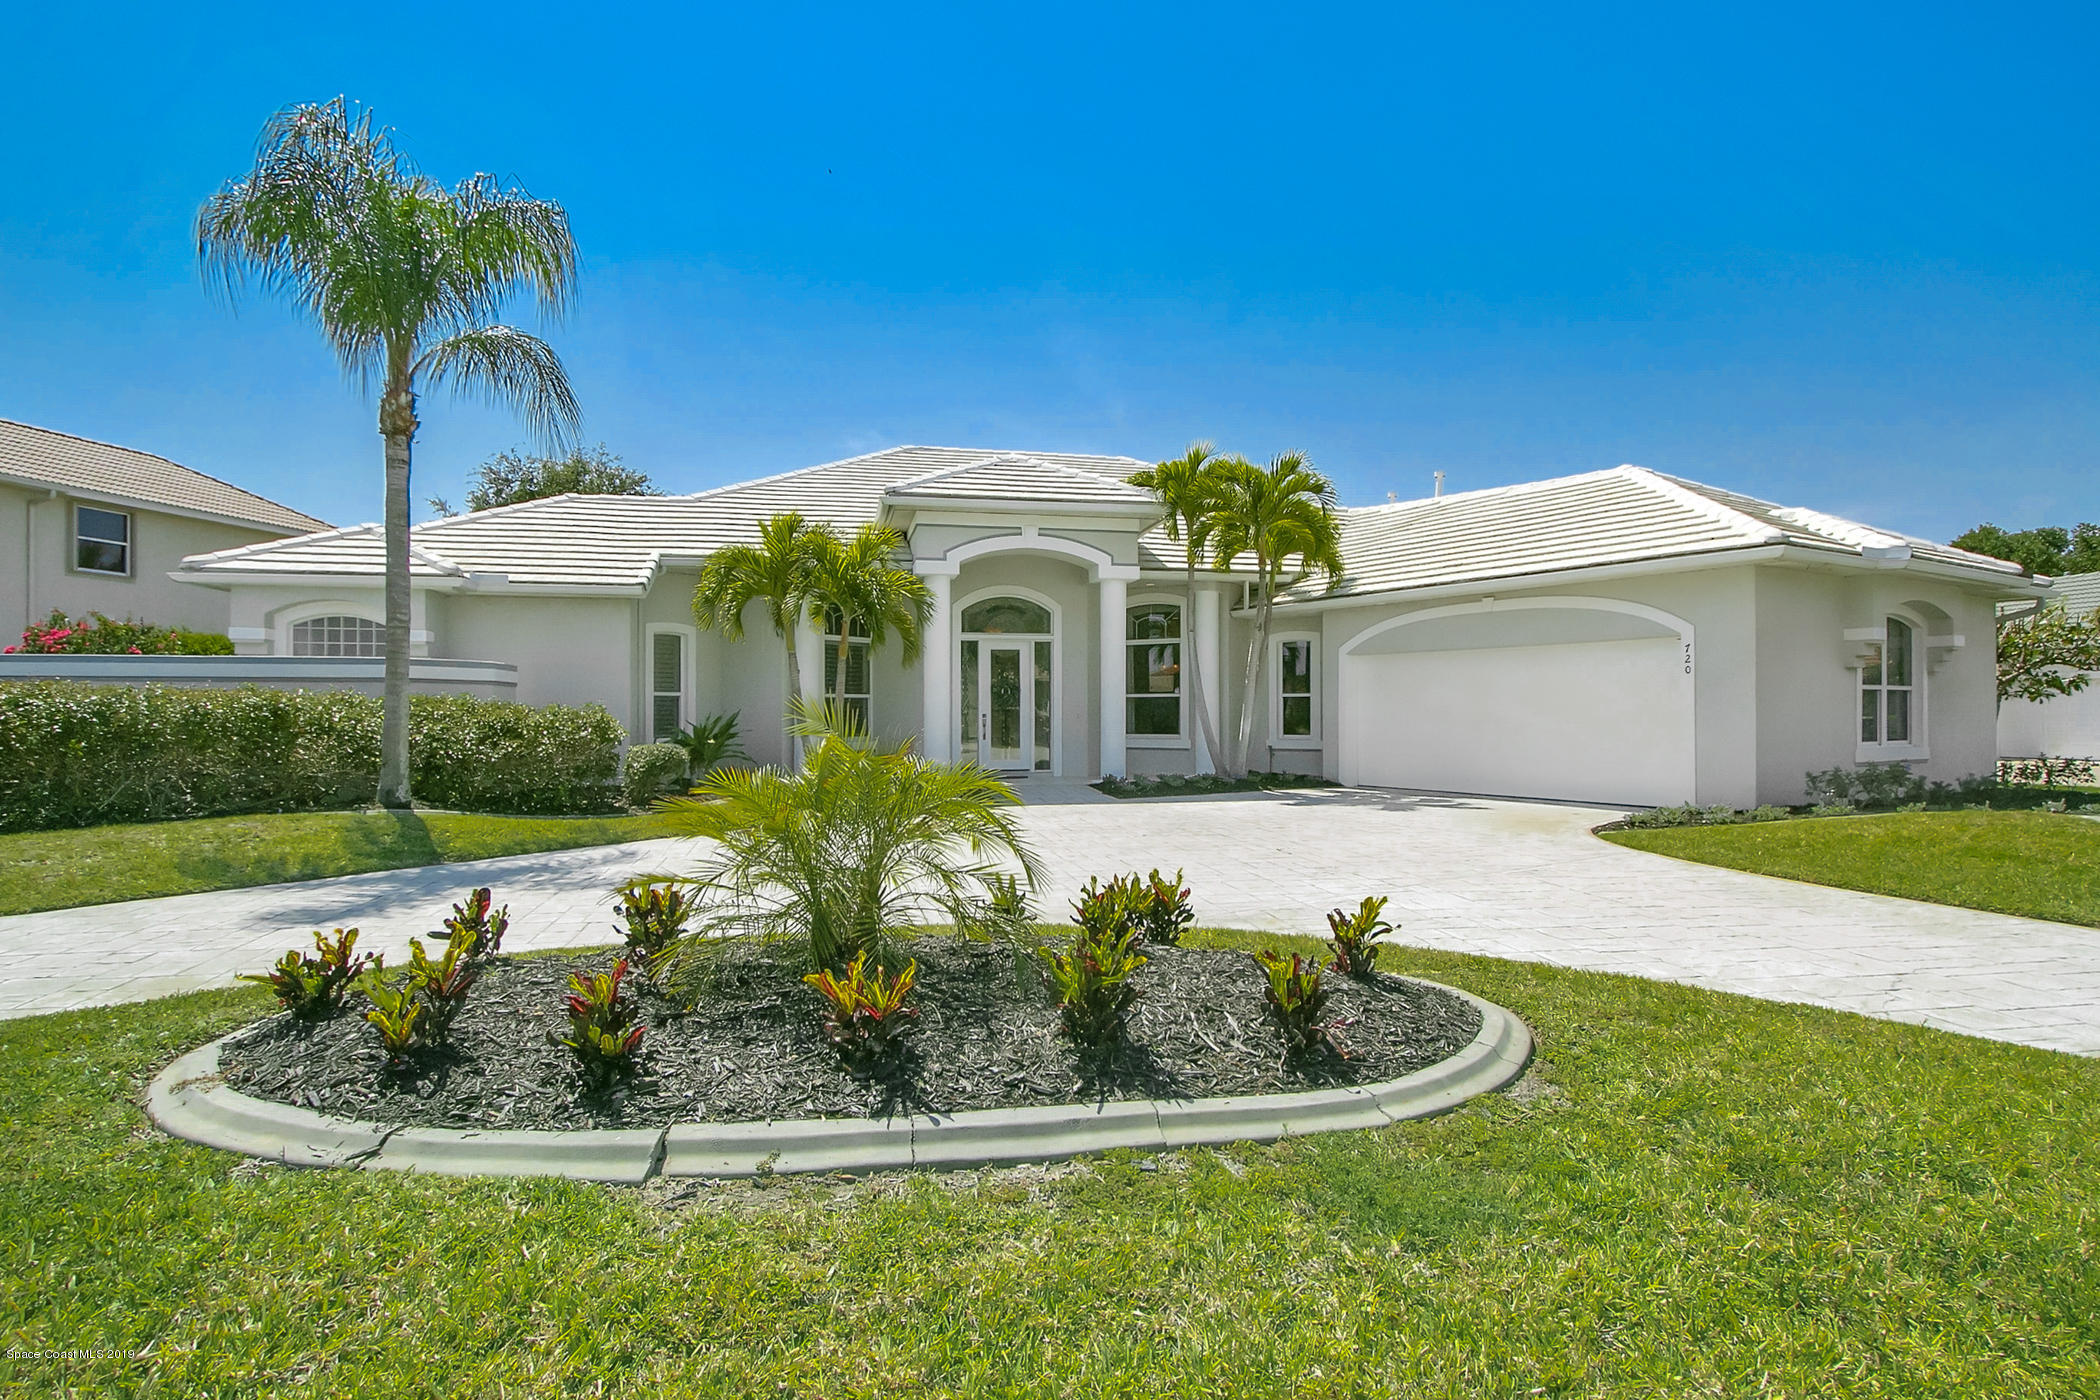 Single Family Homes for Sale at 720 Nicklaus Melbourne, Florida 32940 United States